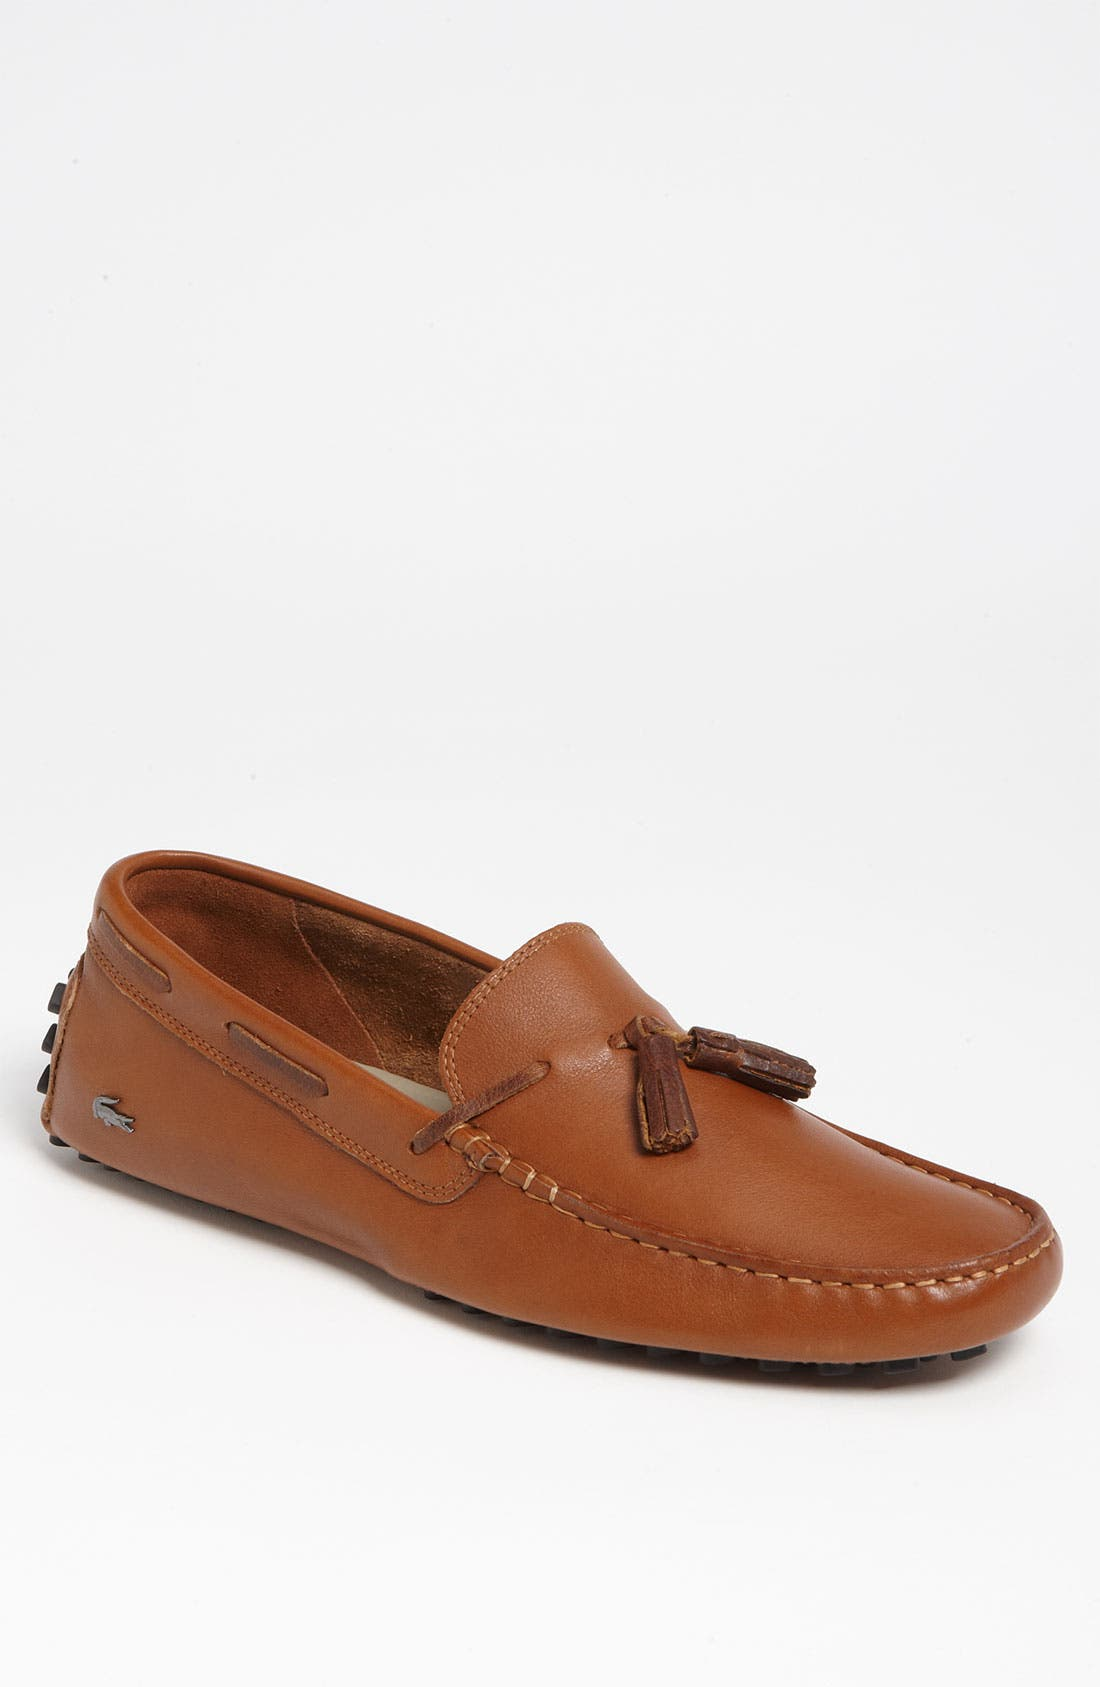 lacoste shoes concours tassel 4 loafers bar charlotte